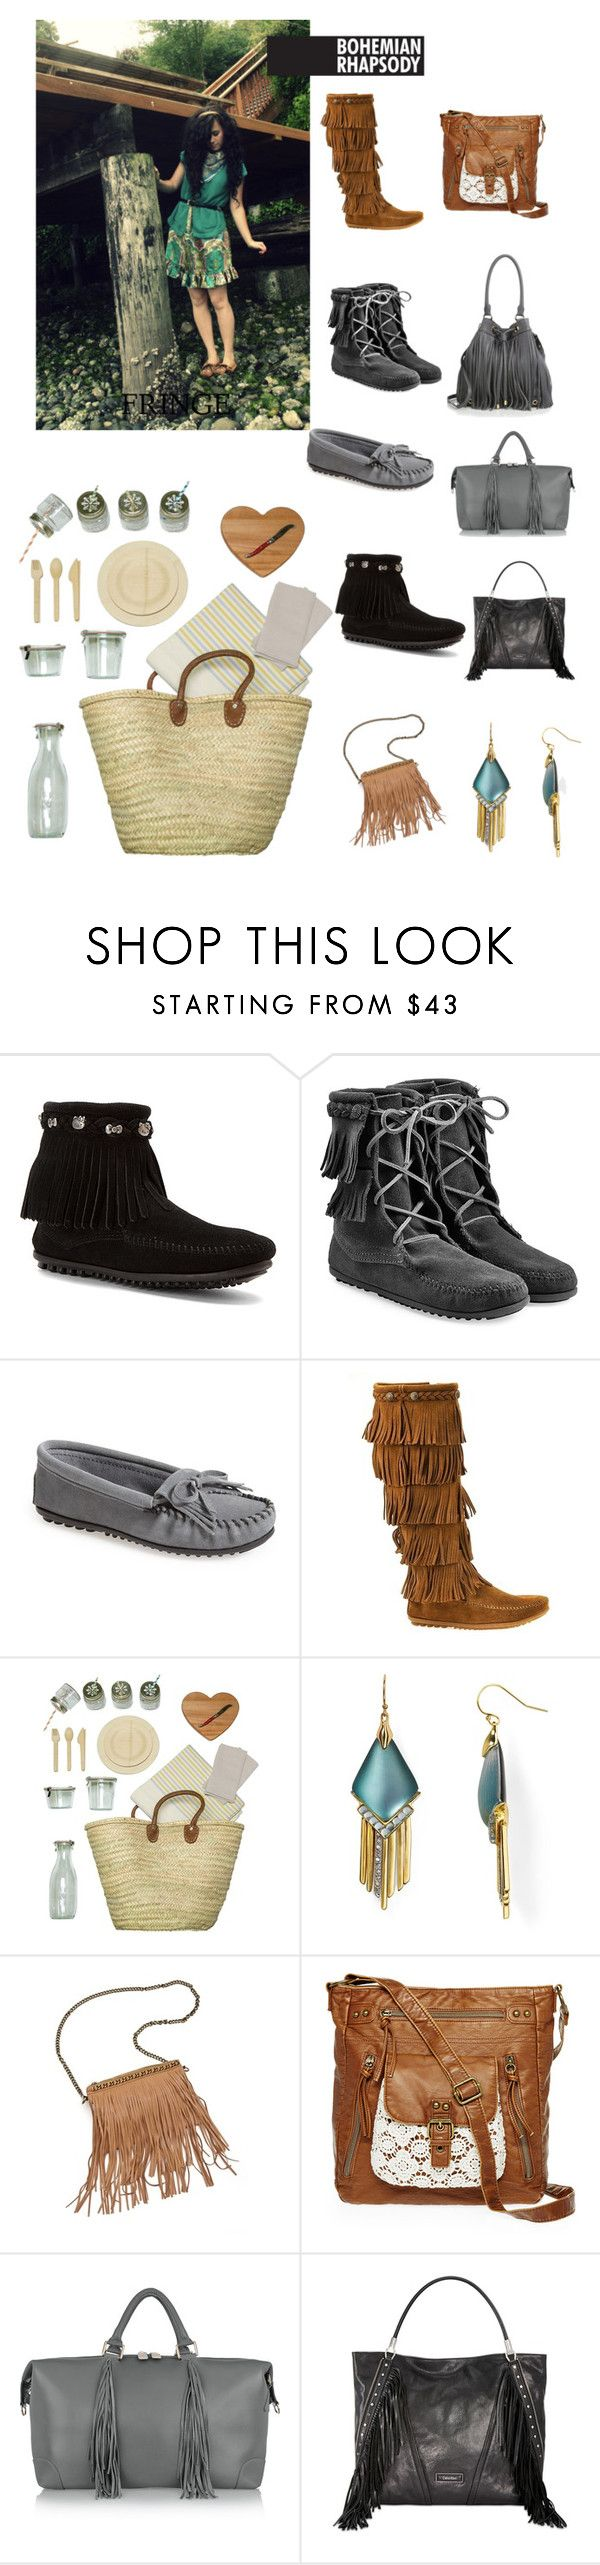 """""""FallFringe"""" by cloudburst612 ❤ liked on Polyvore featuring Minnetonka, ACME Party Box Company, Alexis Bittar, Patchington, T-shirt & Jeans, Eddie Harrop, Calvin Klein and Milly"""